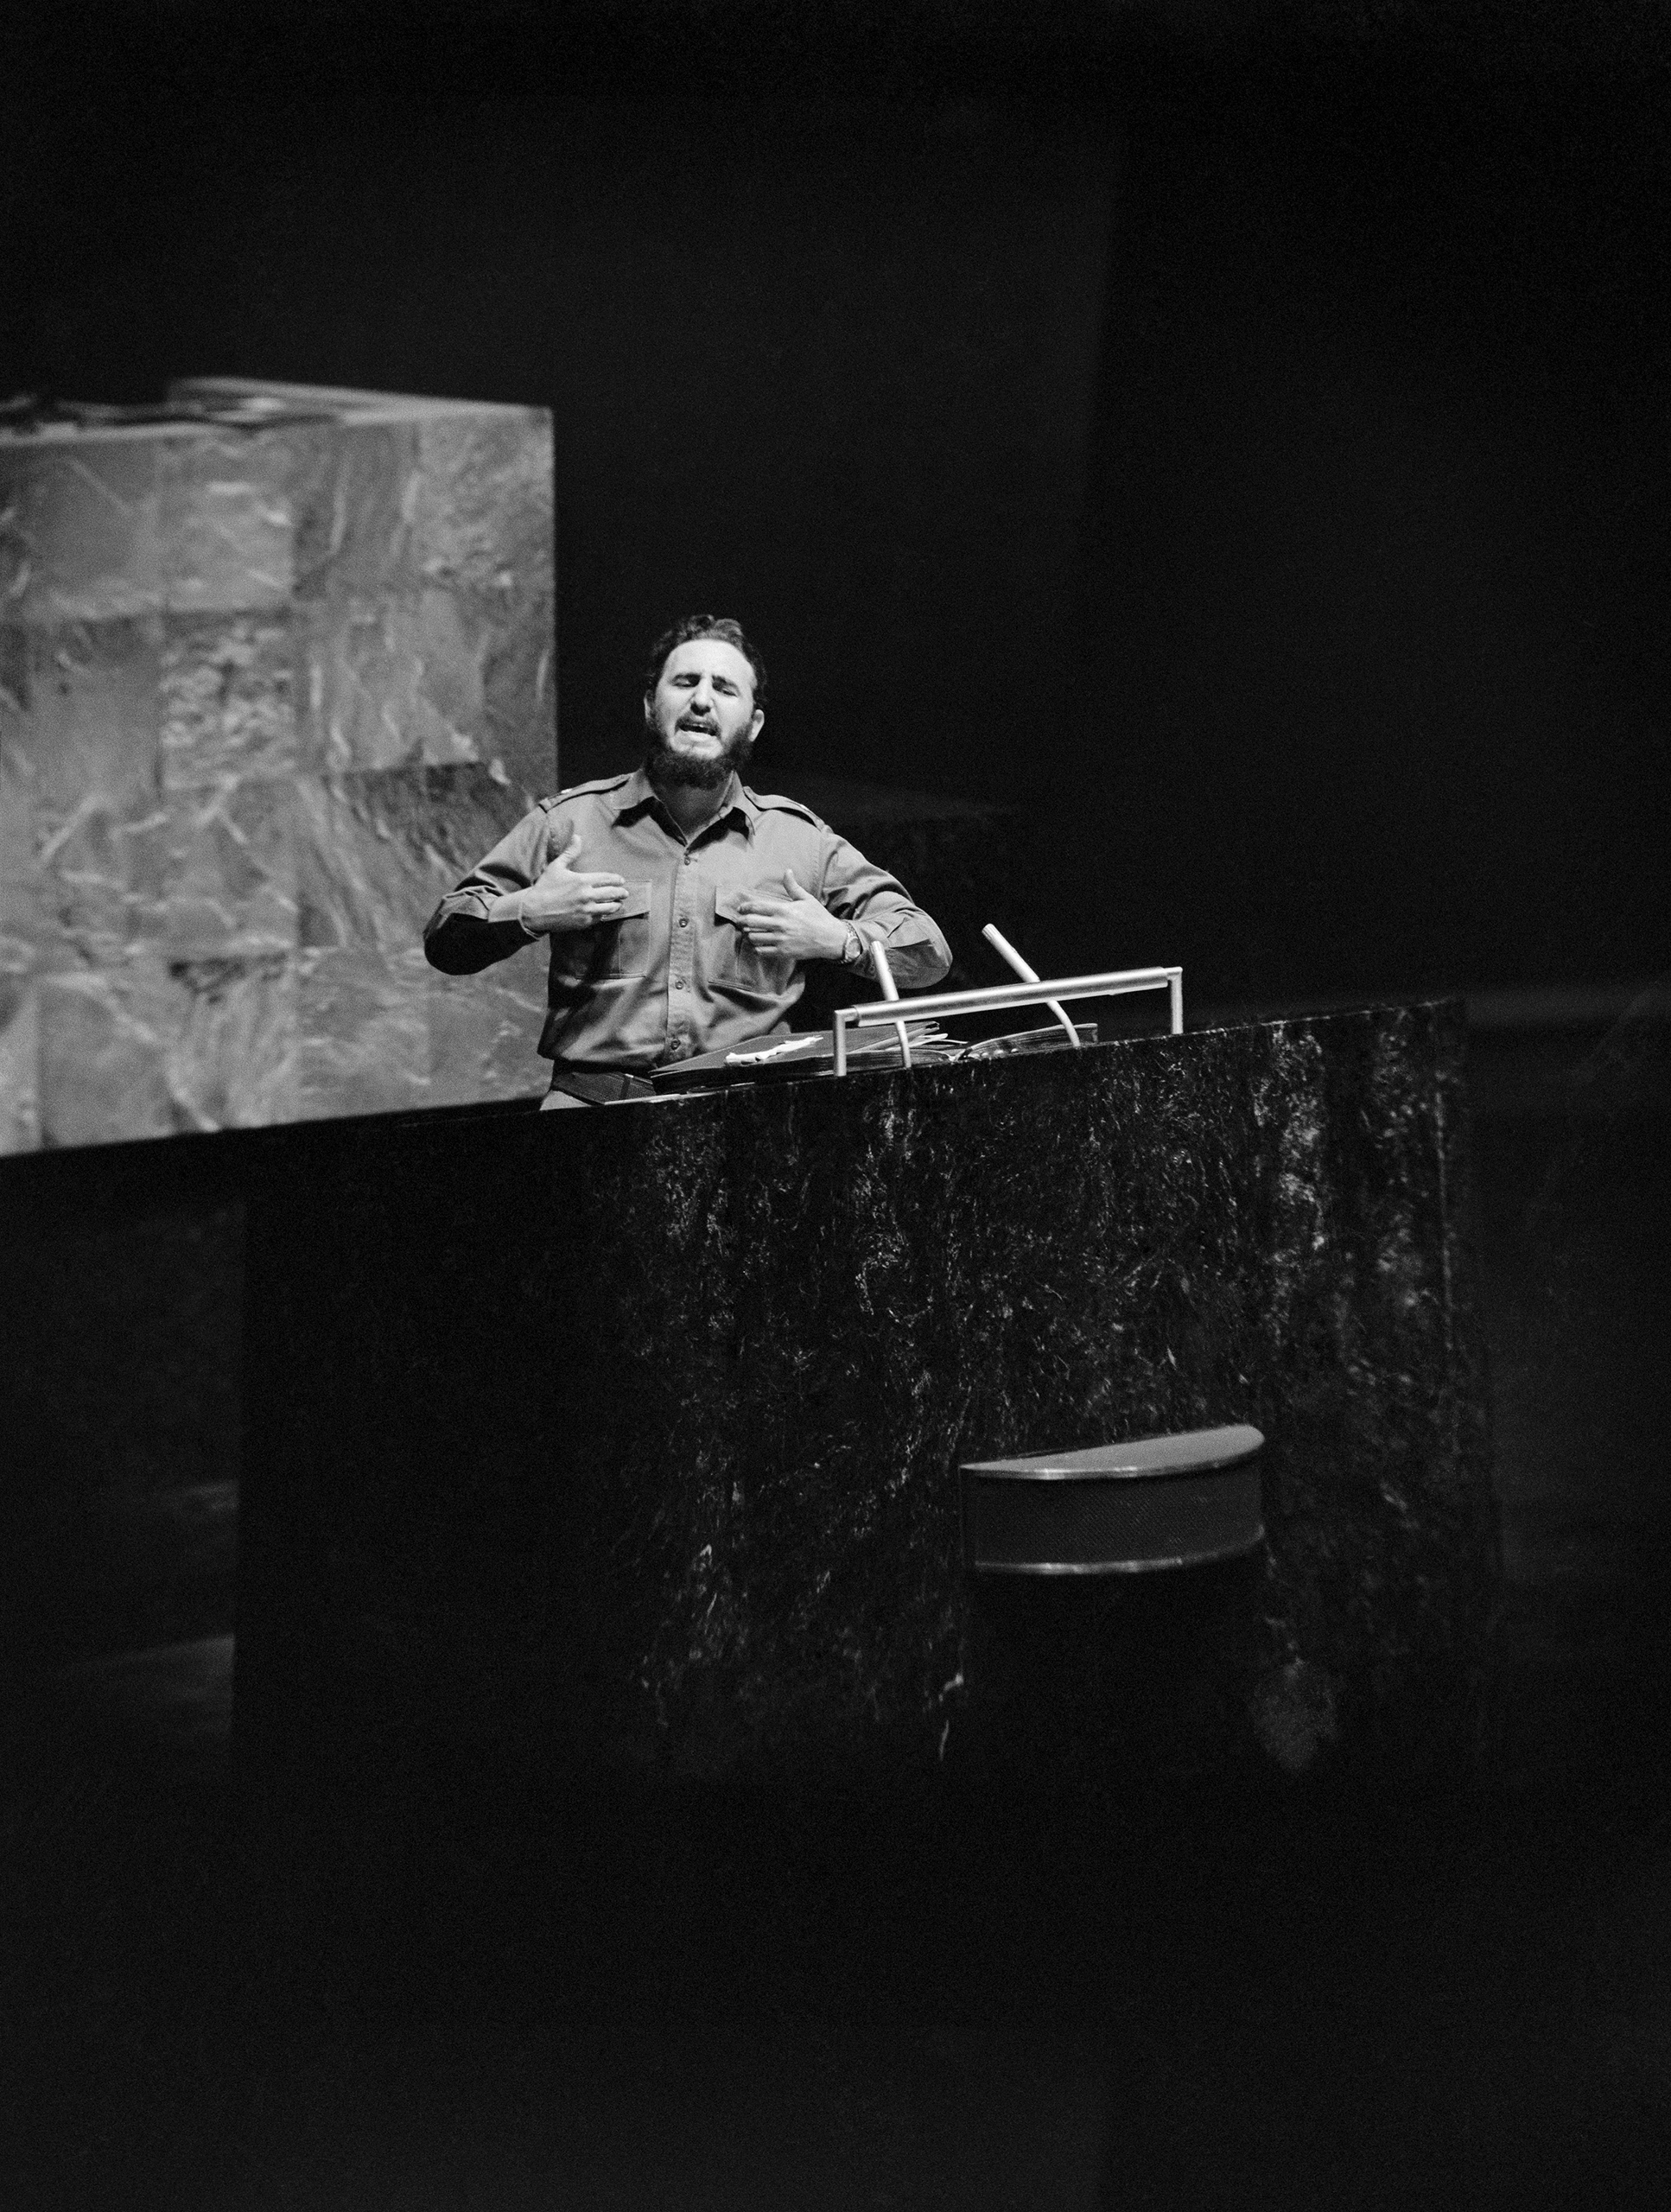 Cuban President Fidel Castro delivers a long-winded speech, heaping abuse on the U.S., at the United Nations in New York on Sept. 26, 1960.